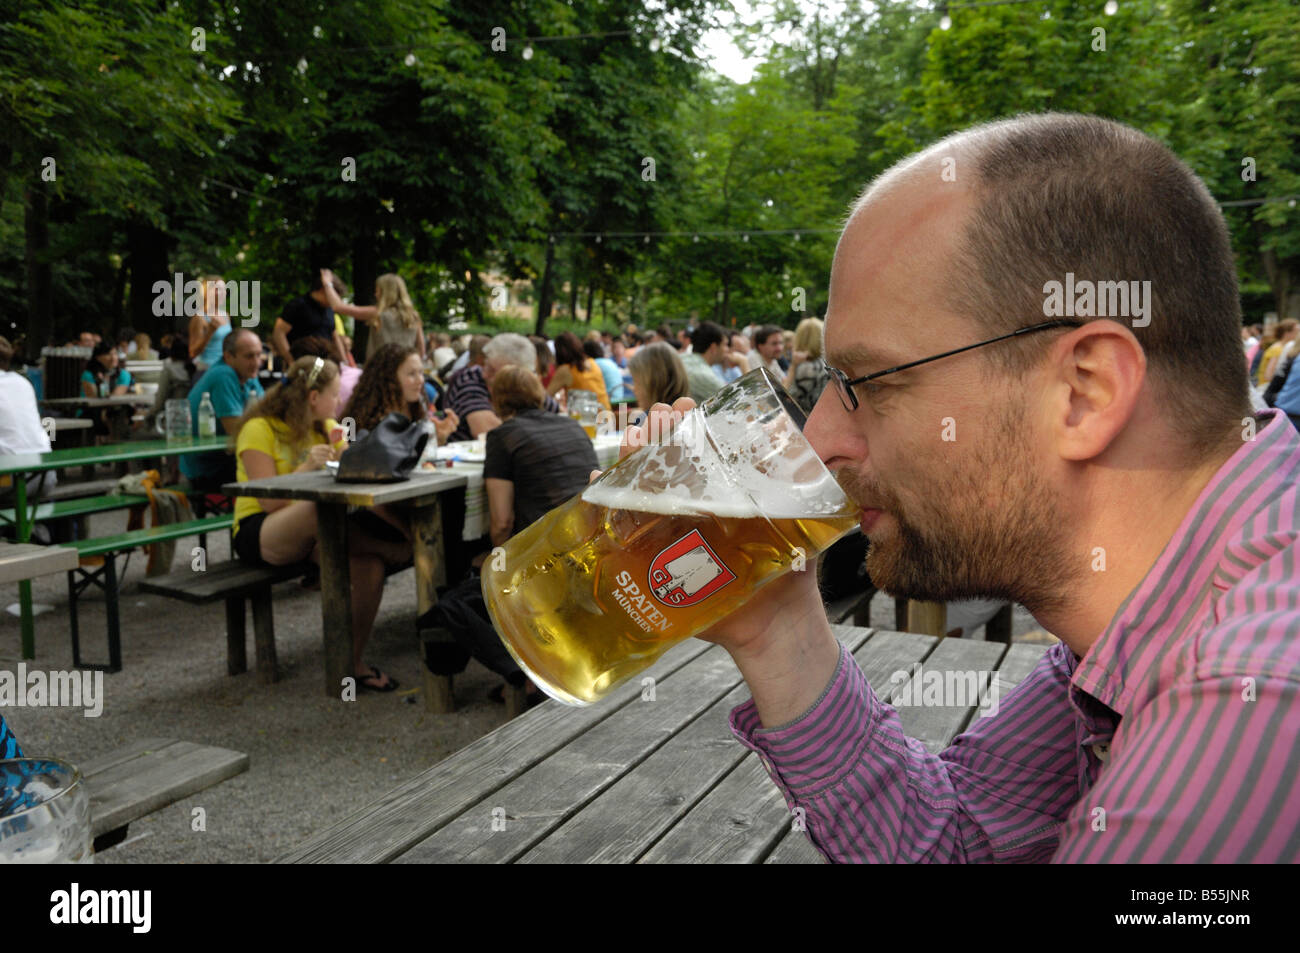 Taxisgarten, Munich beer garden, Bavaria, Germany - Stock Image